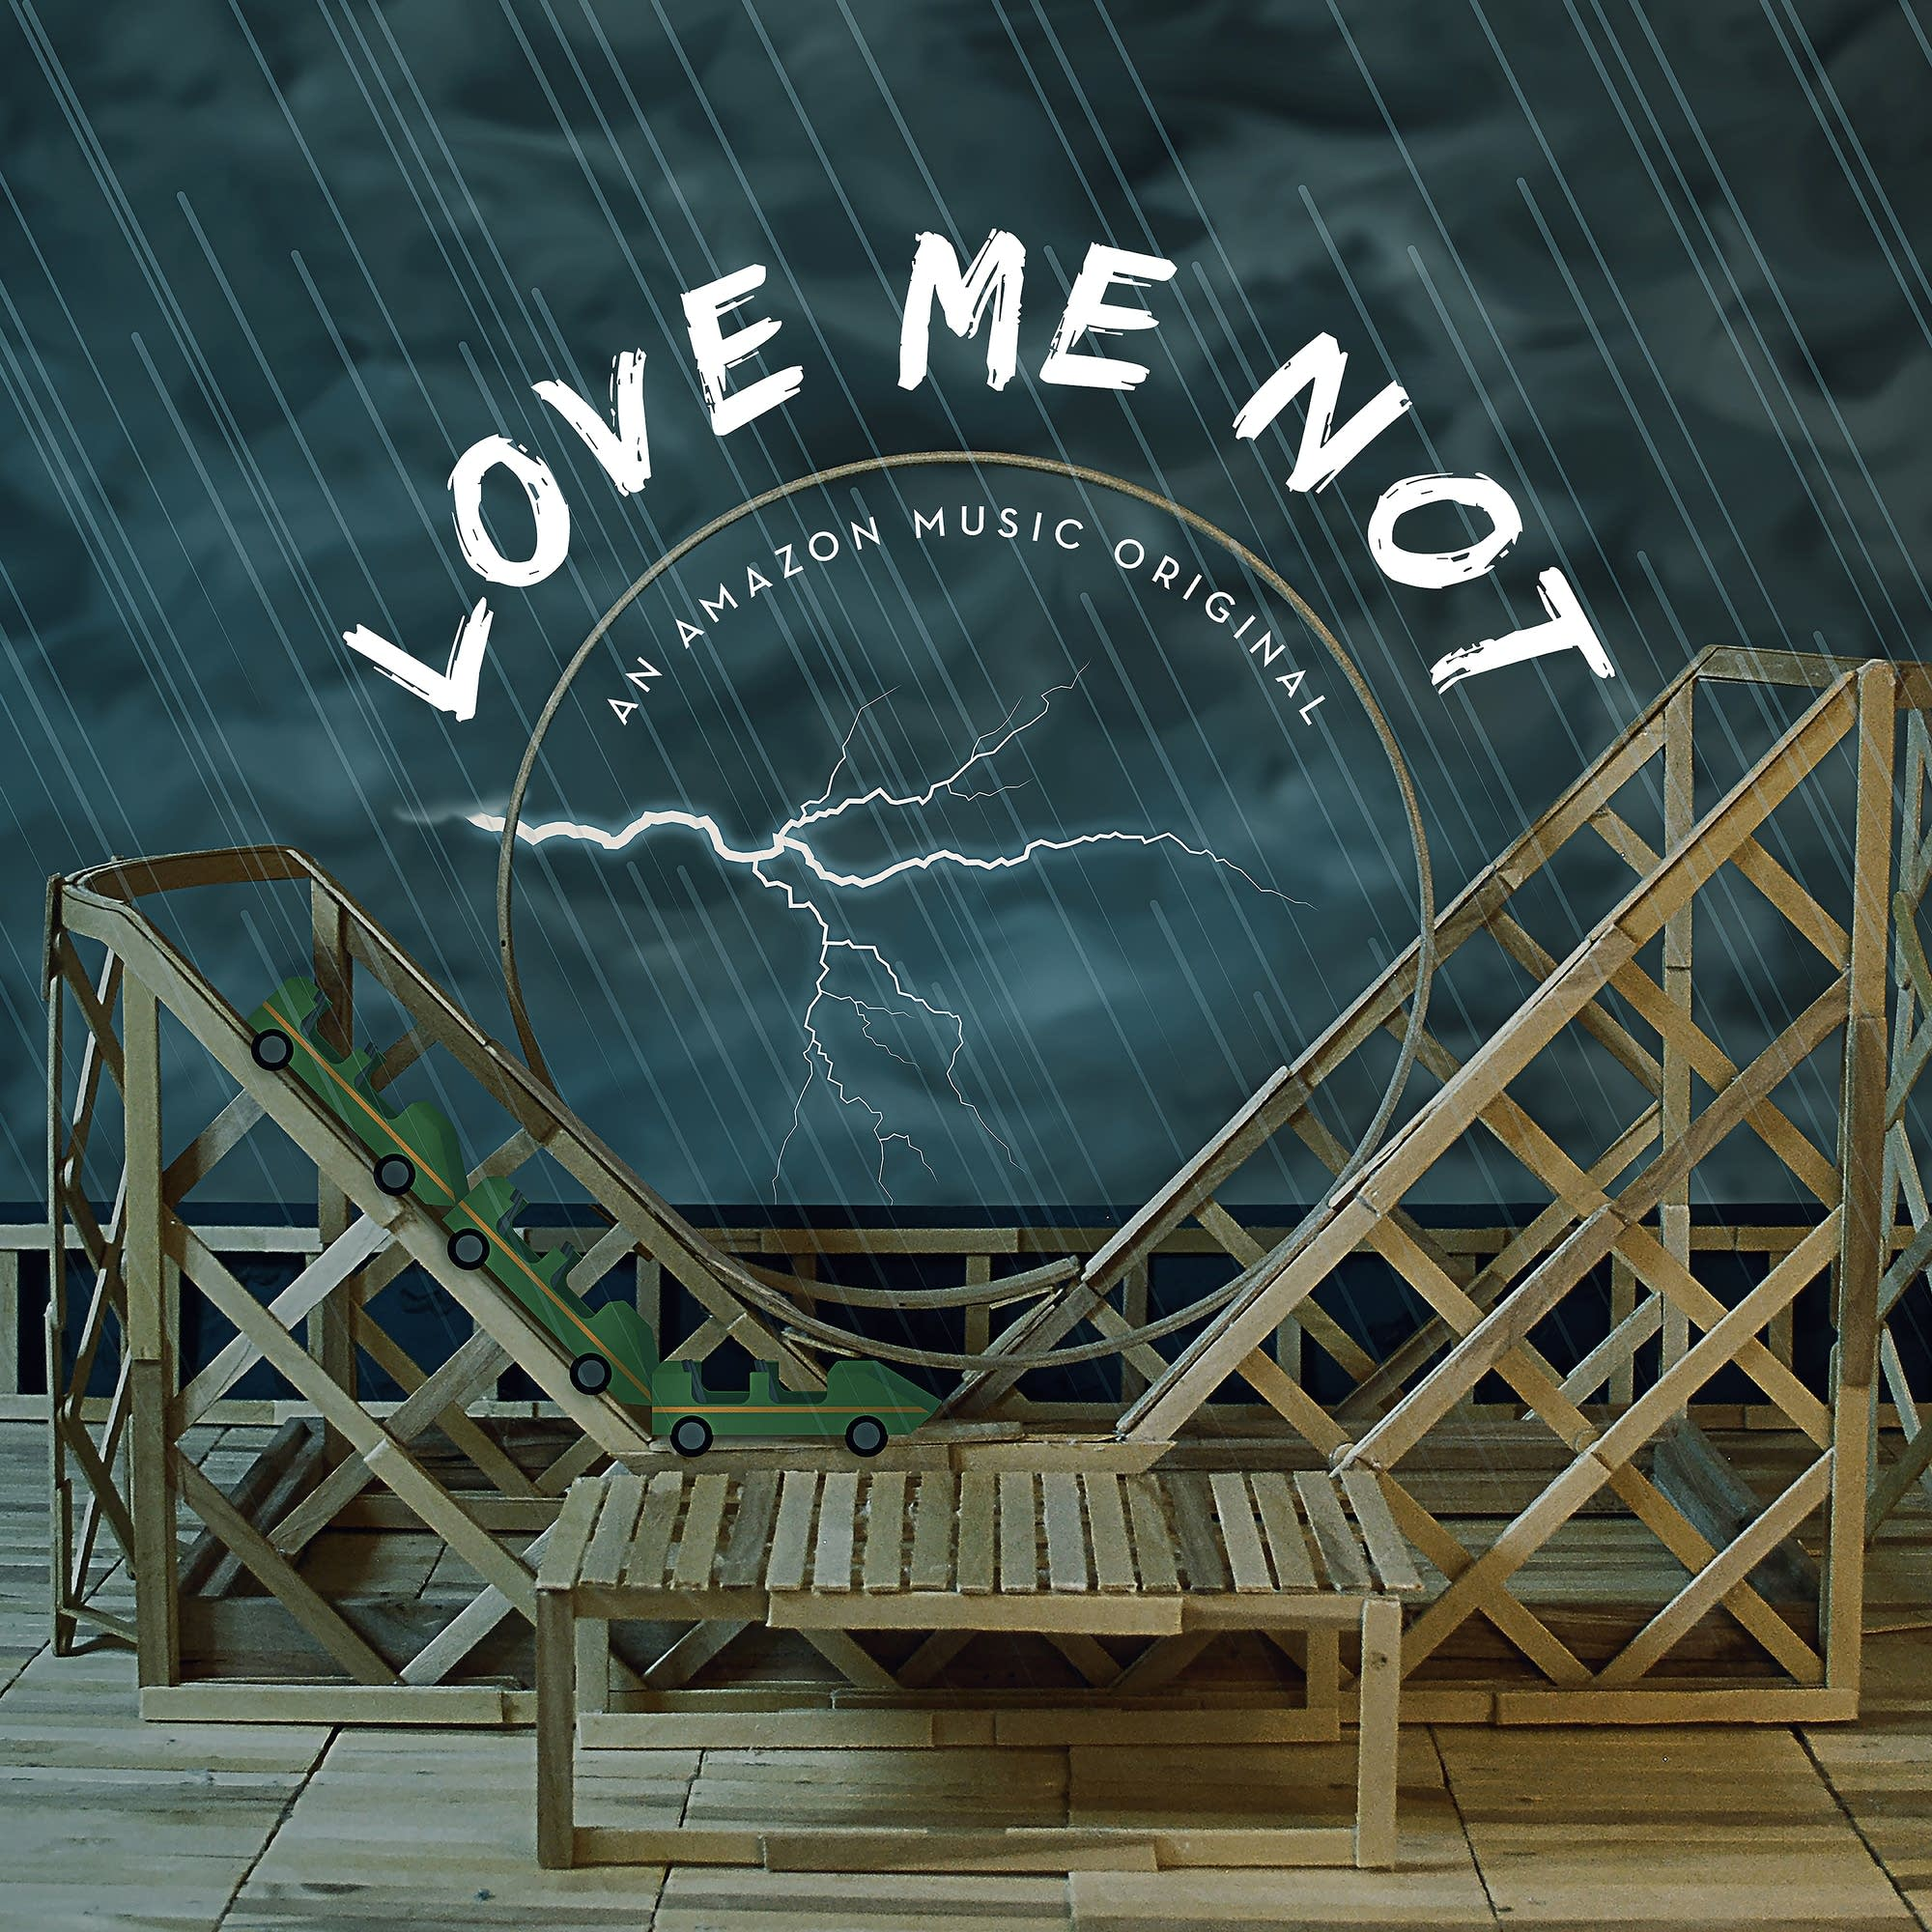 Amazon Music's 'Love Me Not' playlist artwork